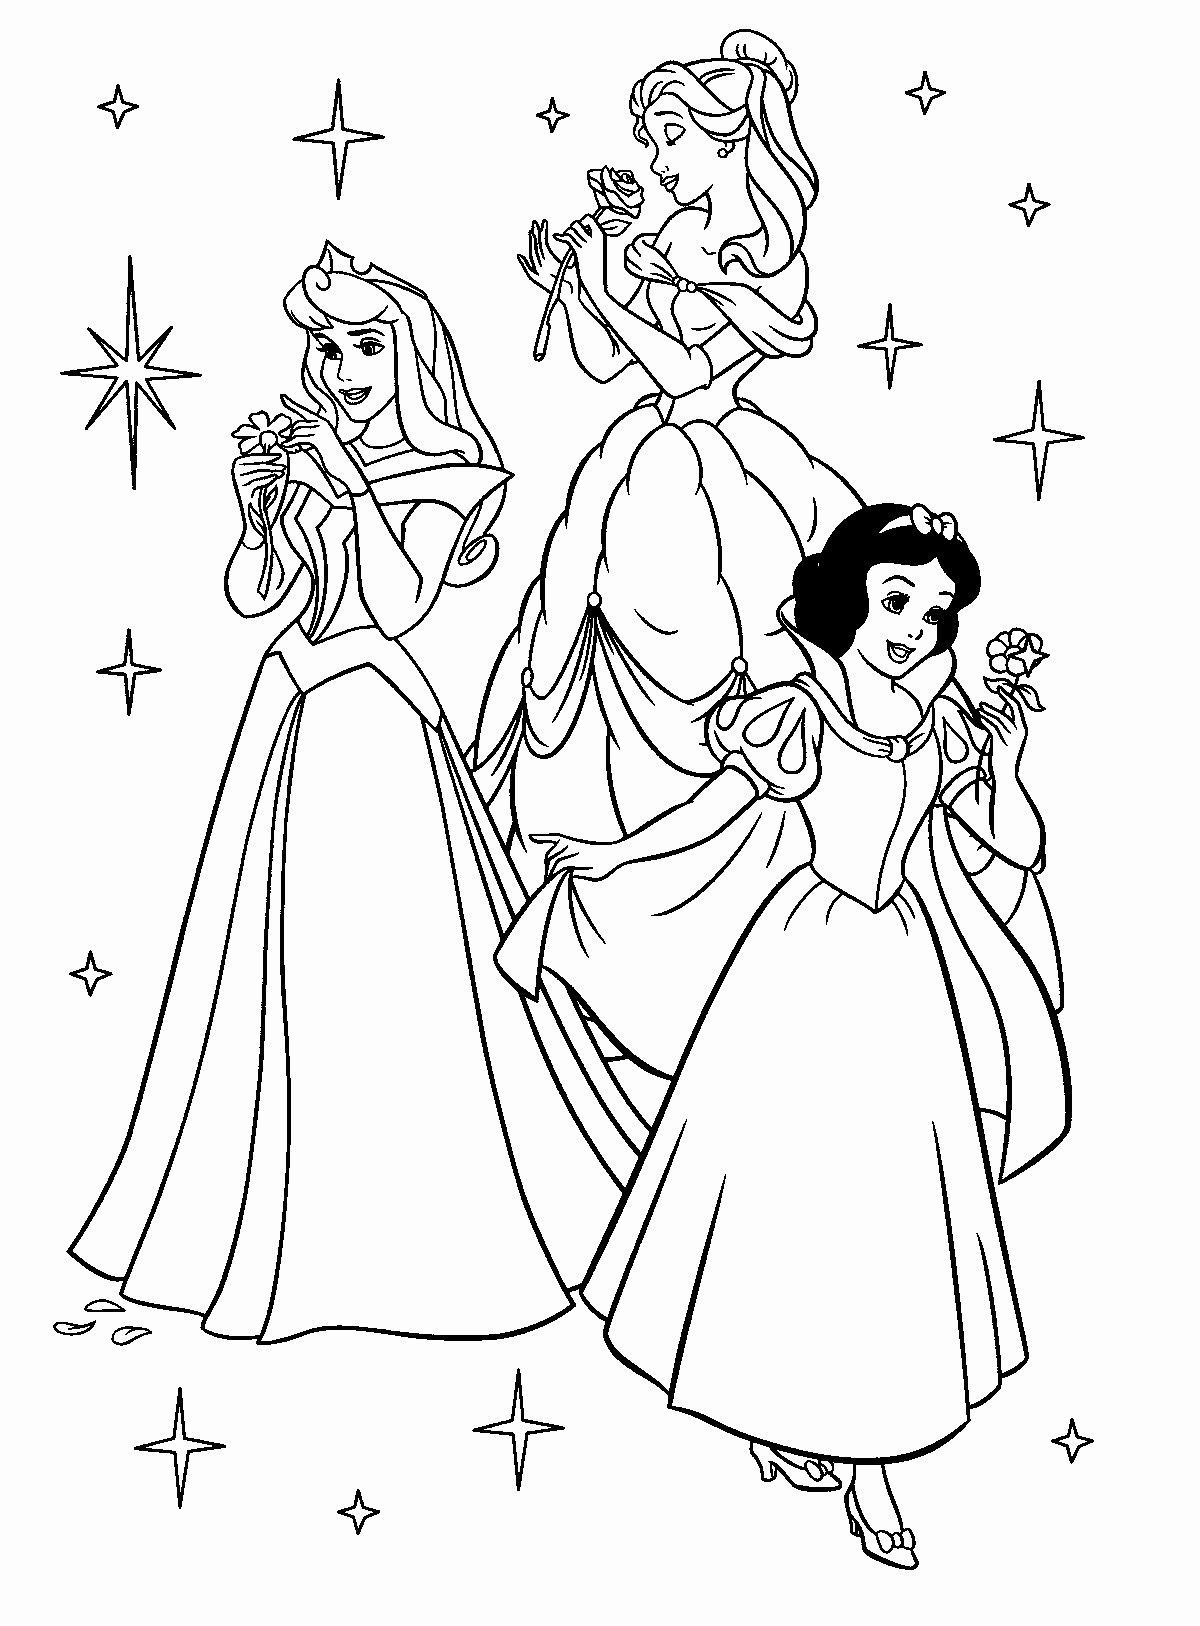 coloring pictures disney princesses princess colouring pages a4 through the thousand images pictures coloring princesses disney